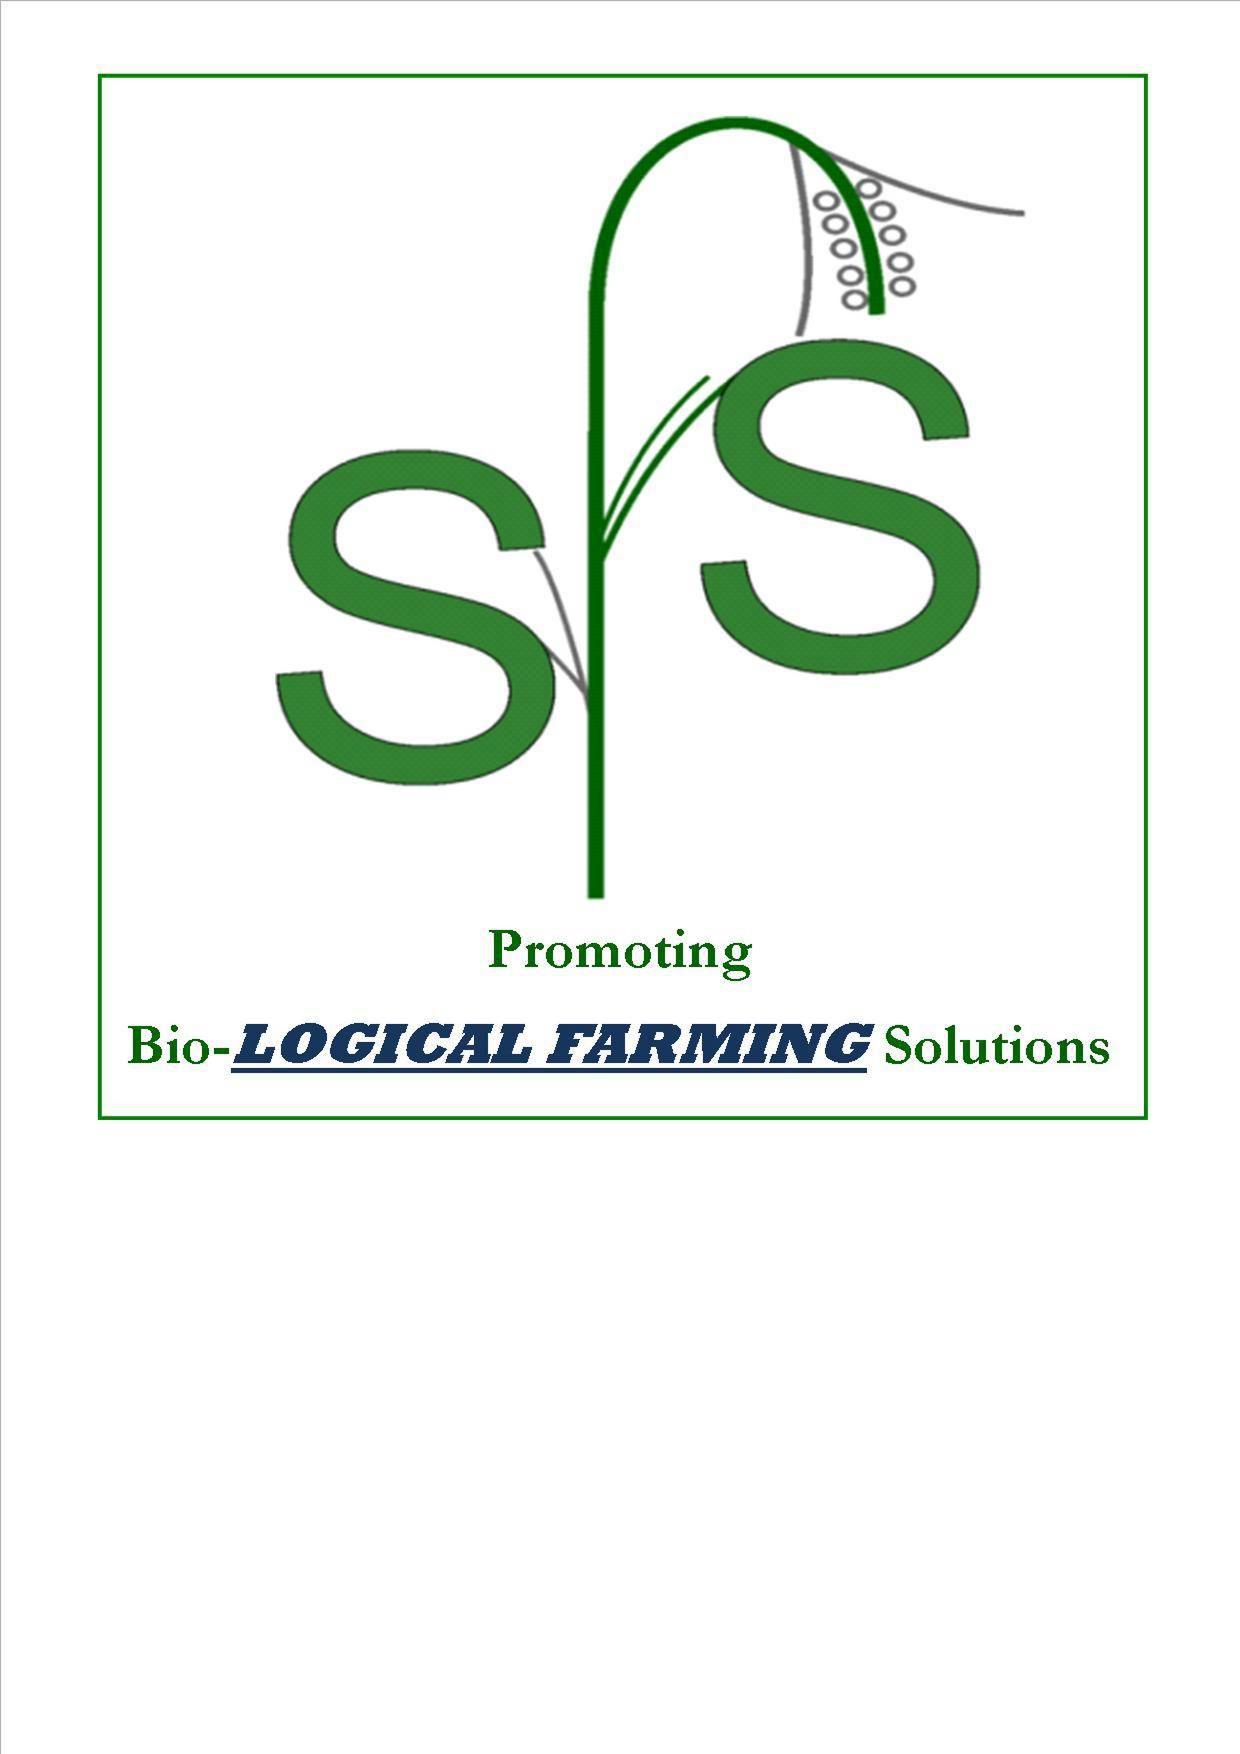 SOIL FERTILITY SERVICES LIMITED